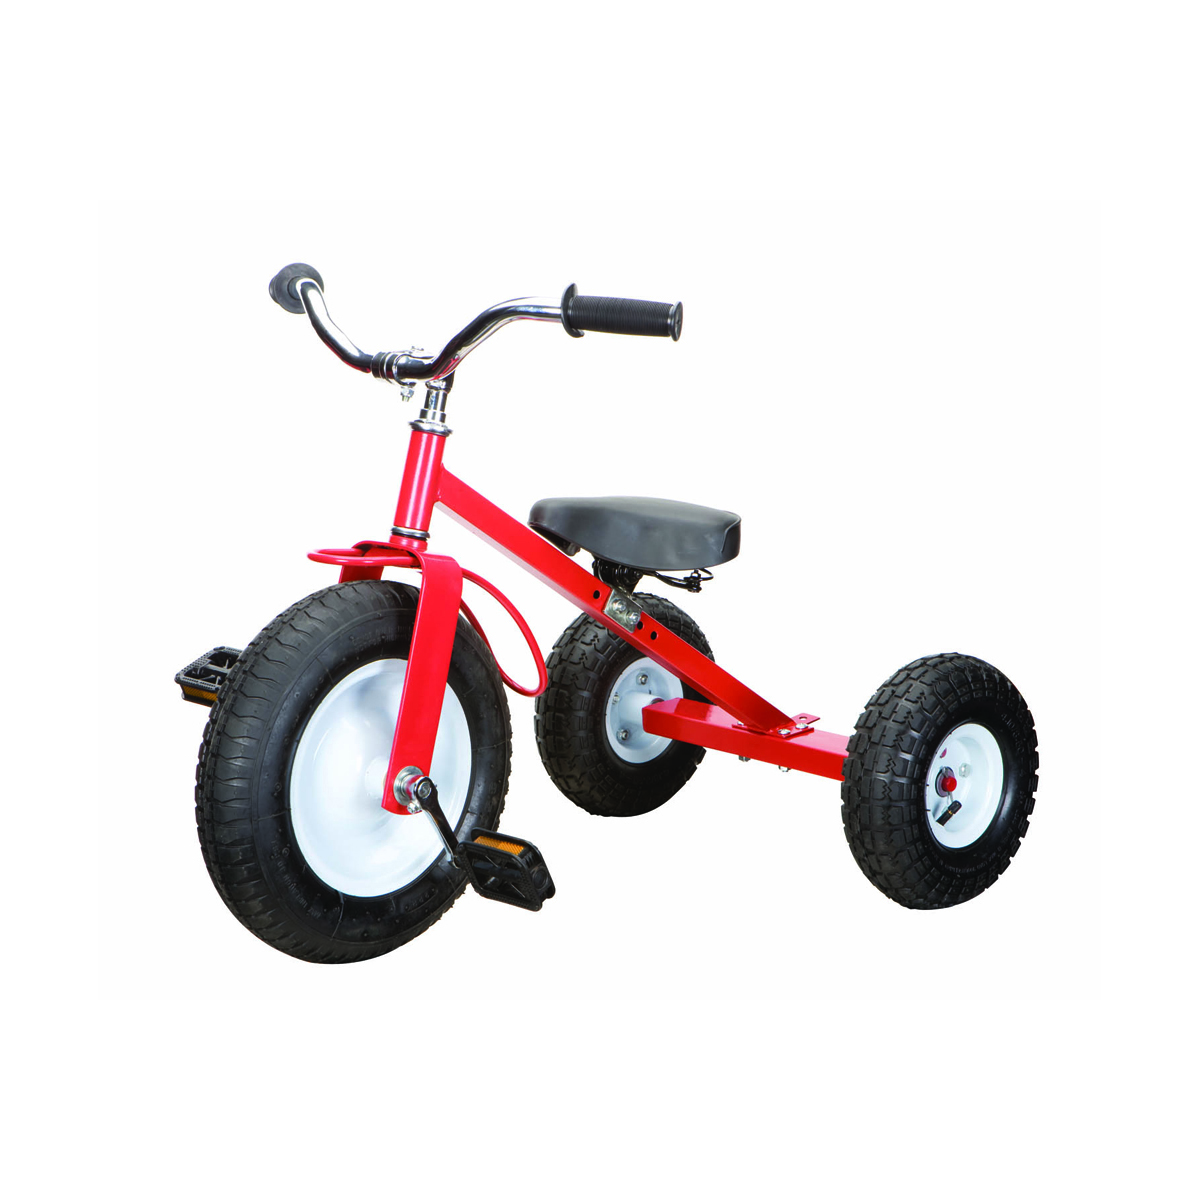 All-Terrain Tricycle